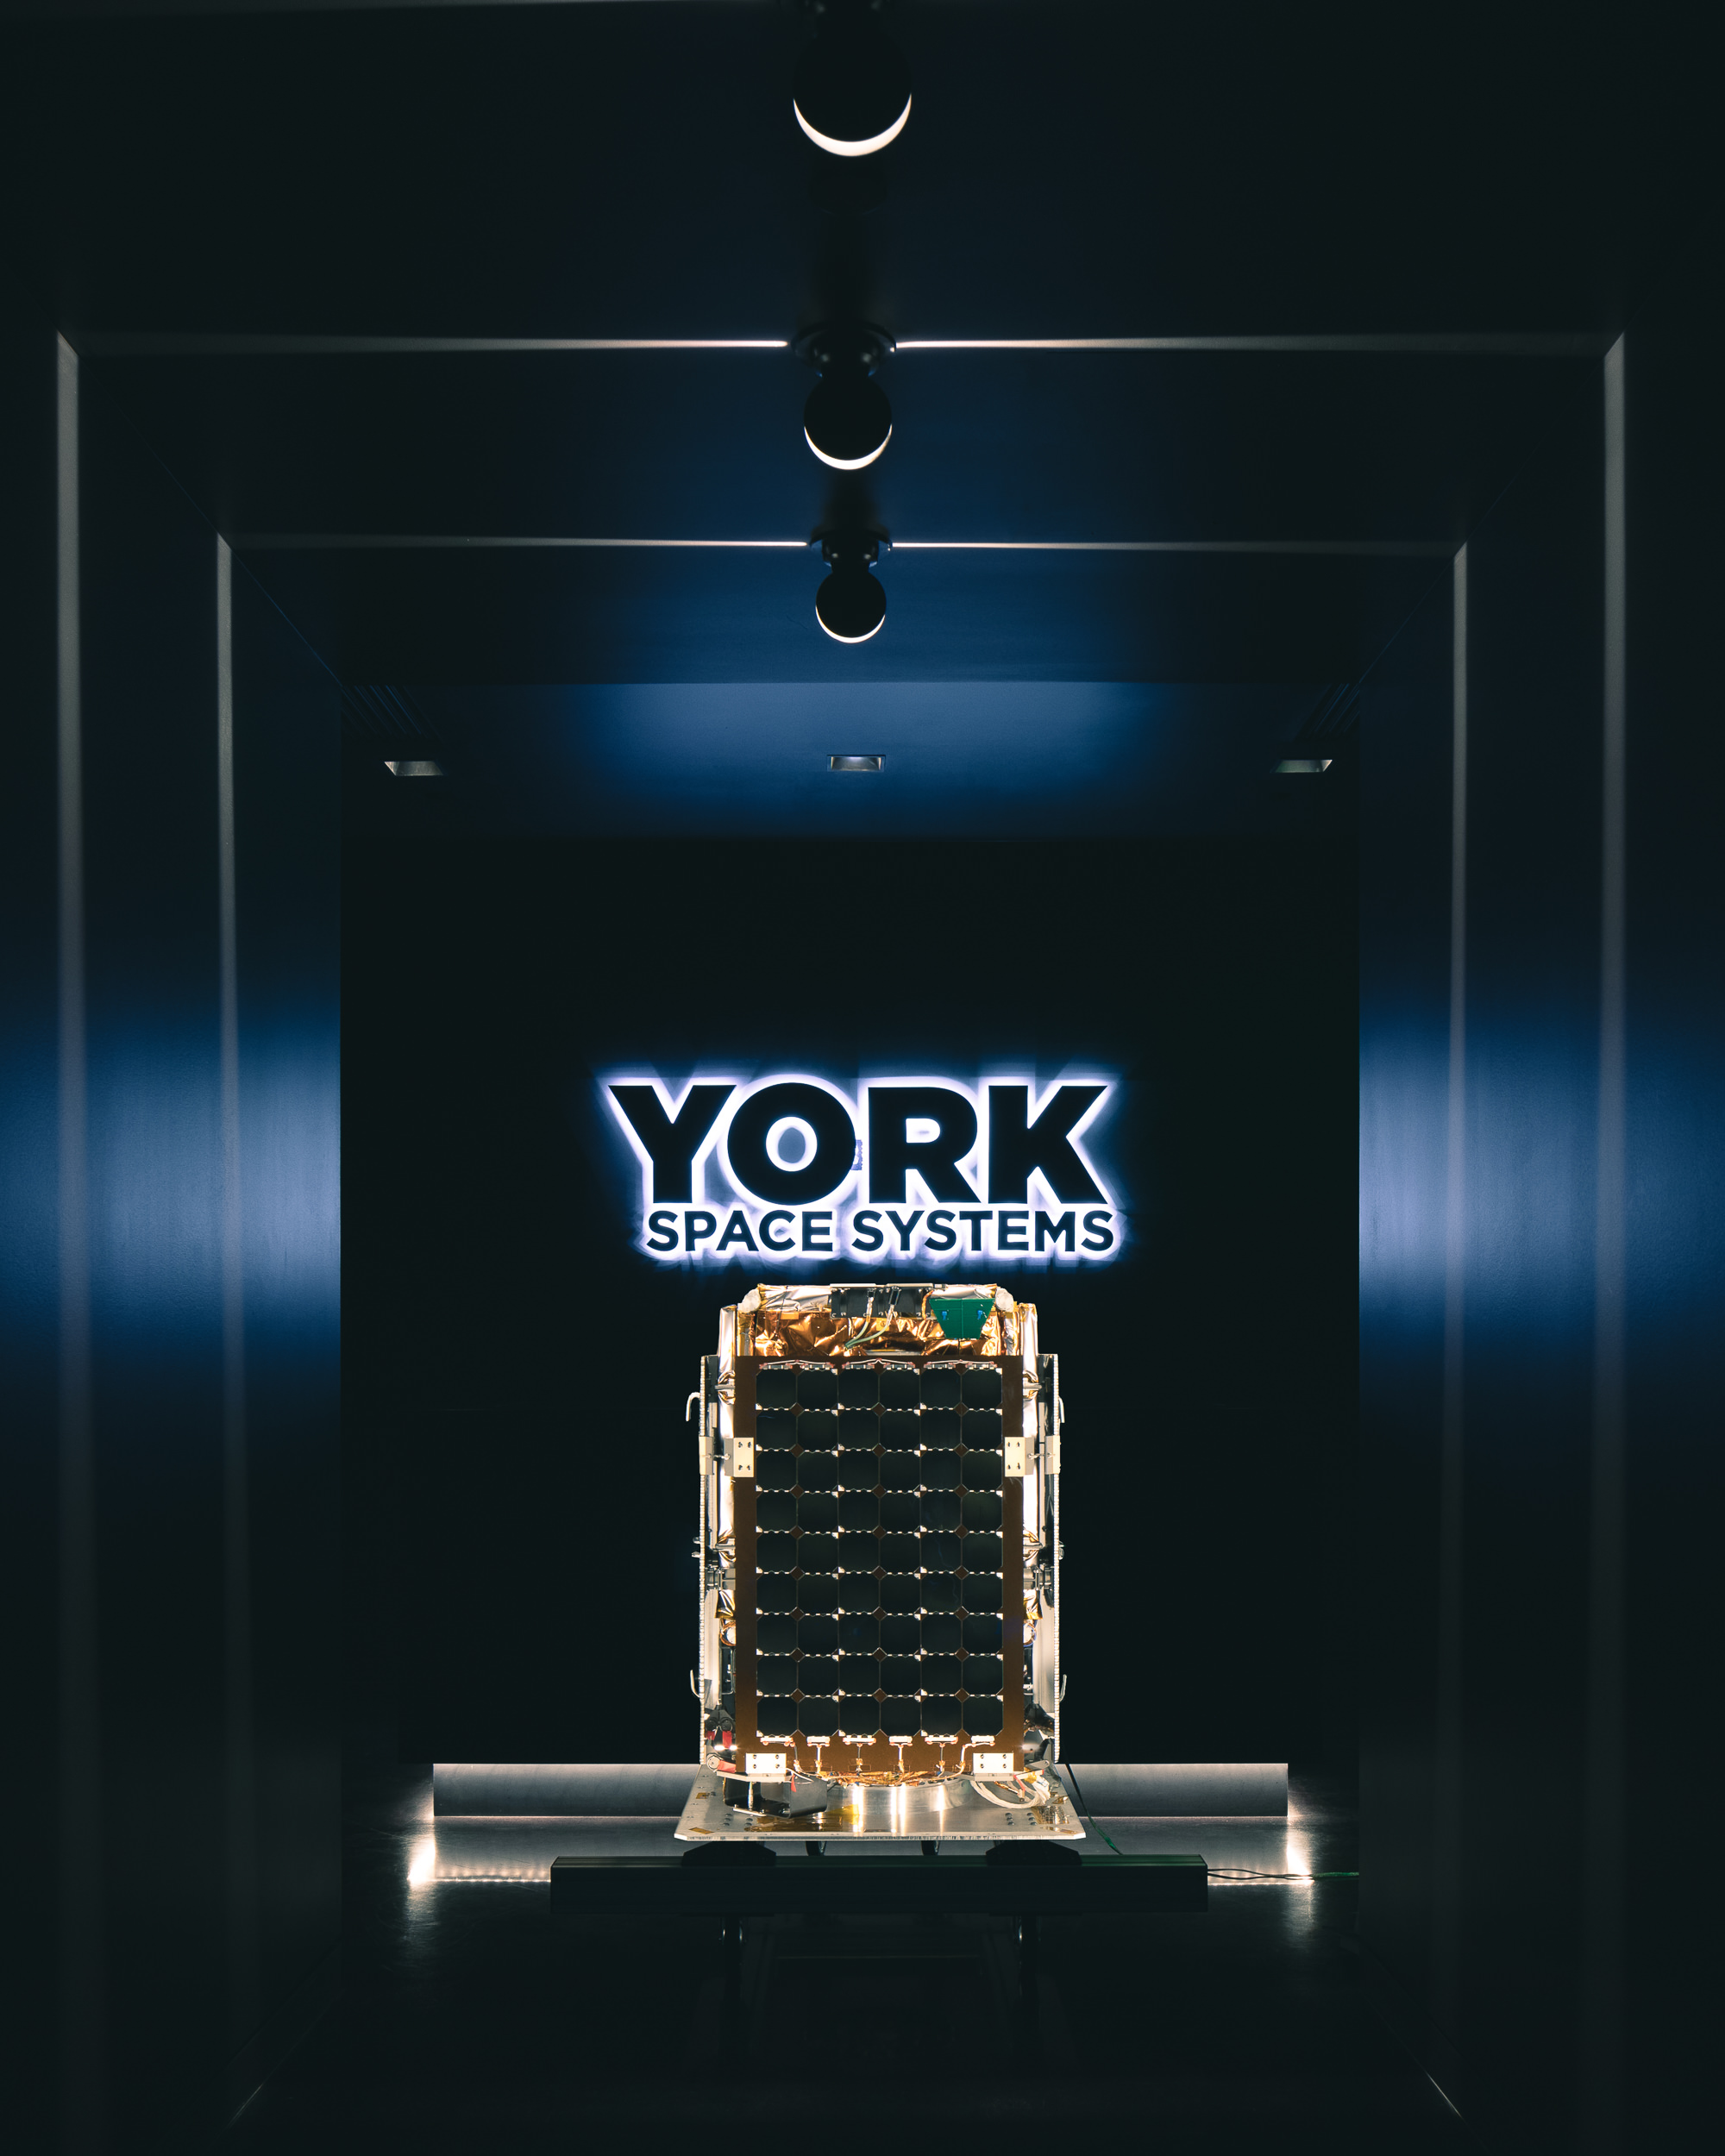 York Space Systems' S-CLASS Spacecraft Platform © 2019 JC Buck